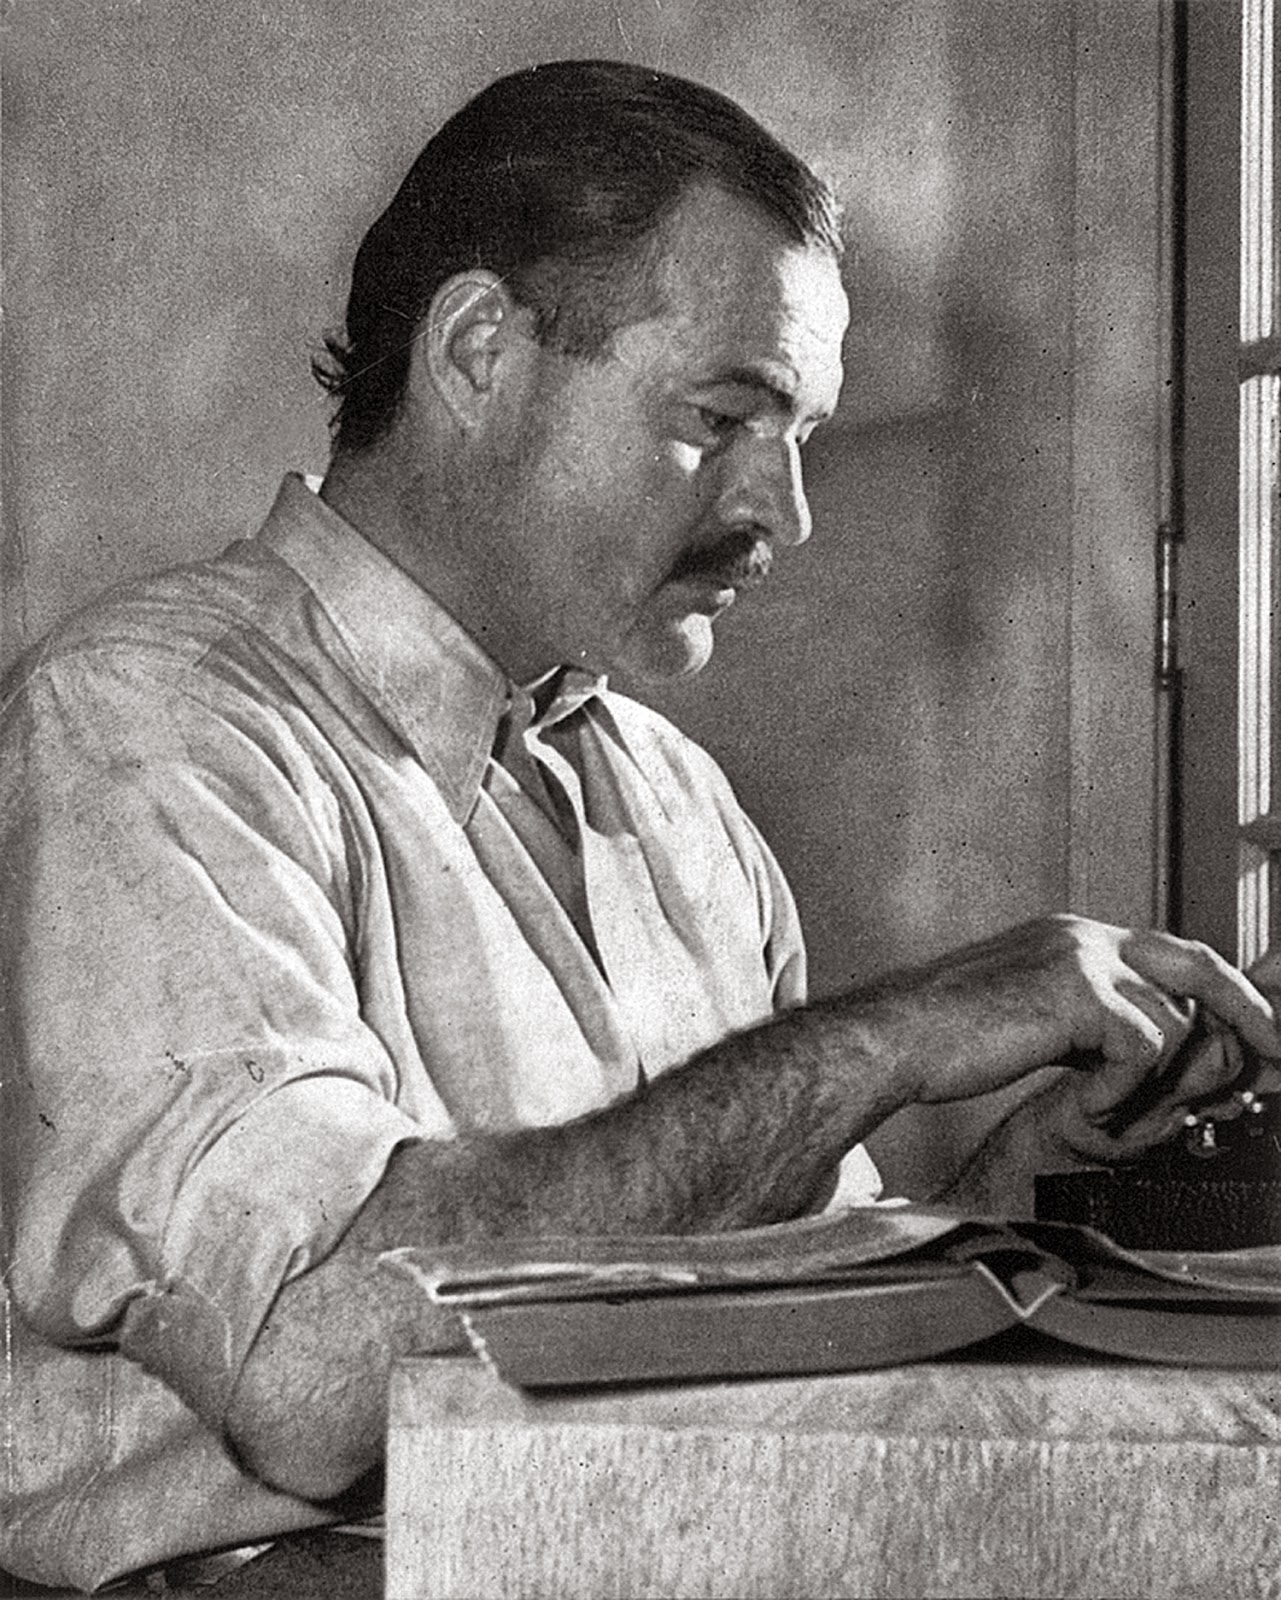 Picture of Ernest Hemingyway - http://upload.wikimedia.org/wikipedia/commons/2/28/ErnestHemingway.jpg